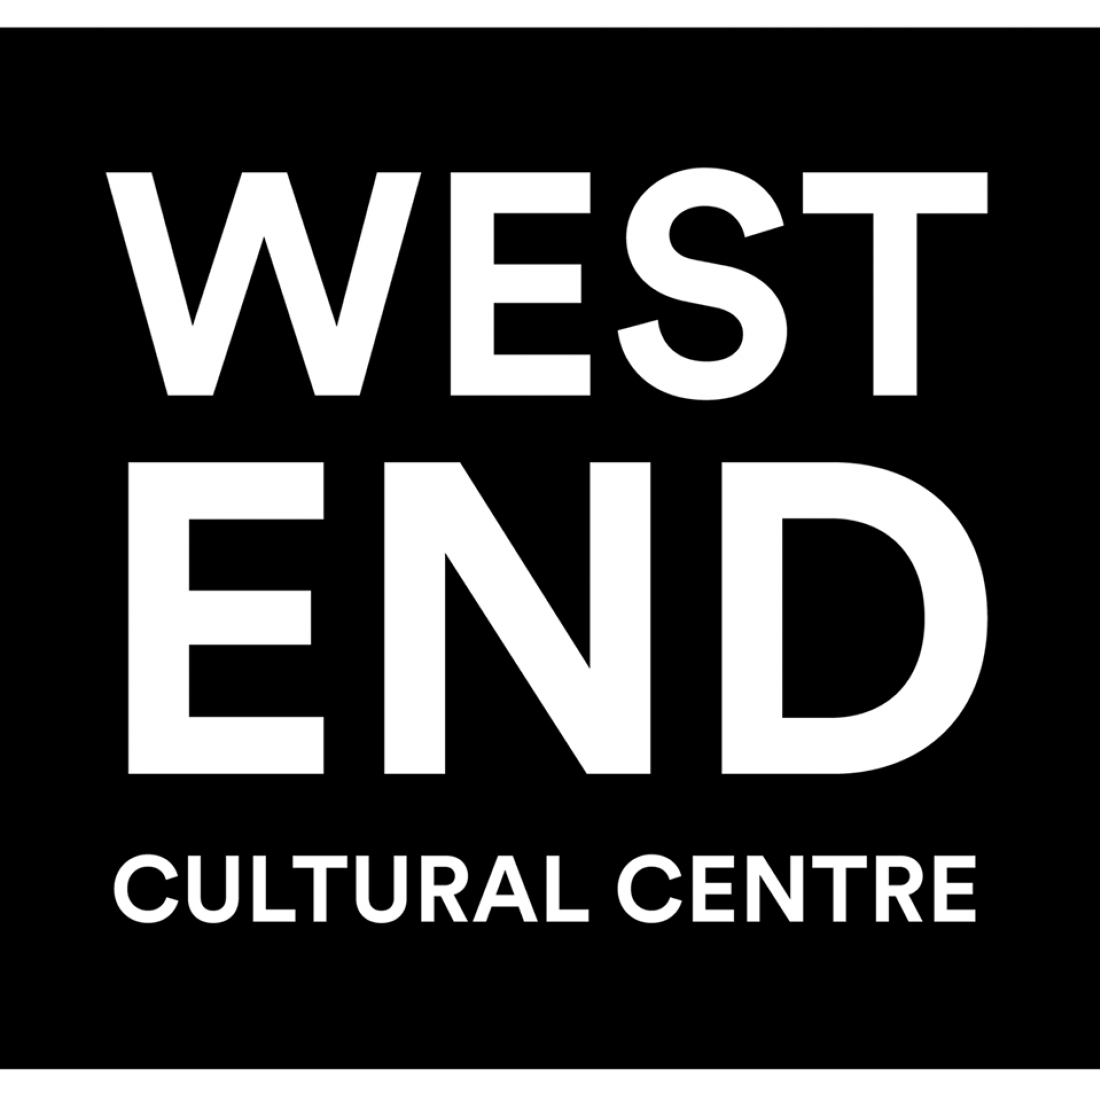 West End Cultural Centre